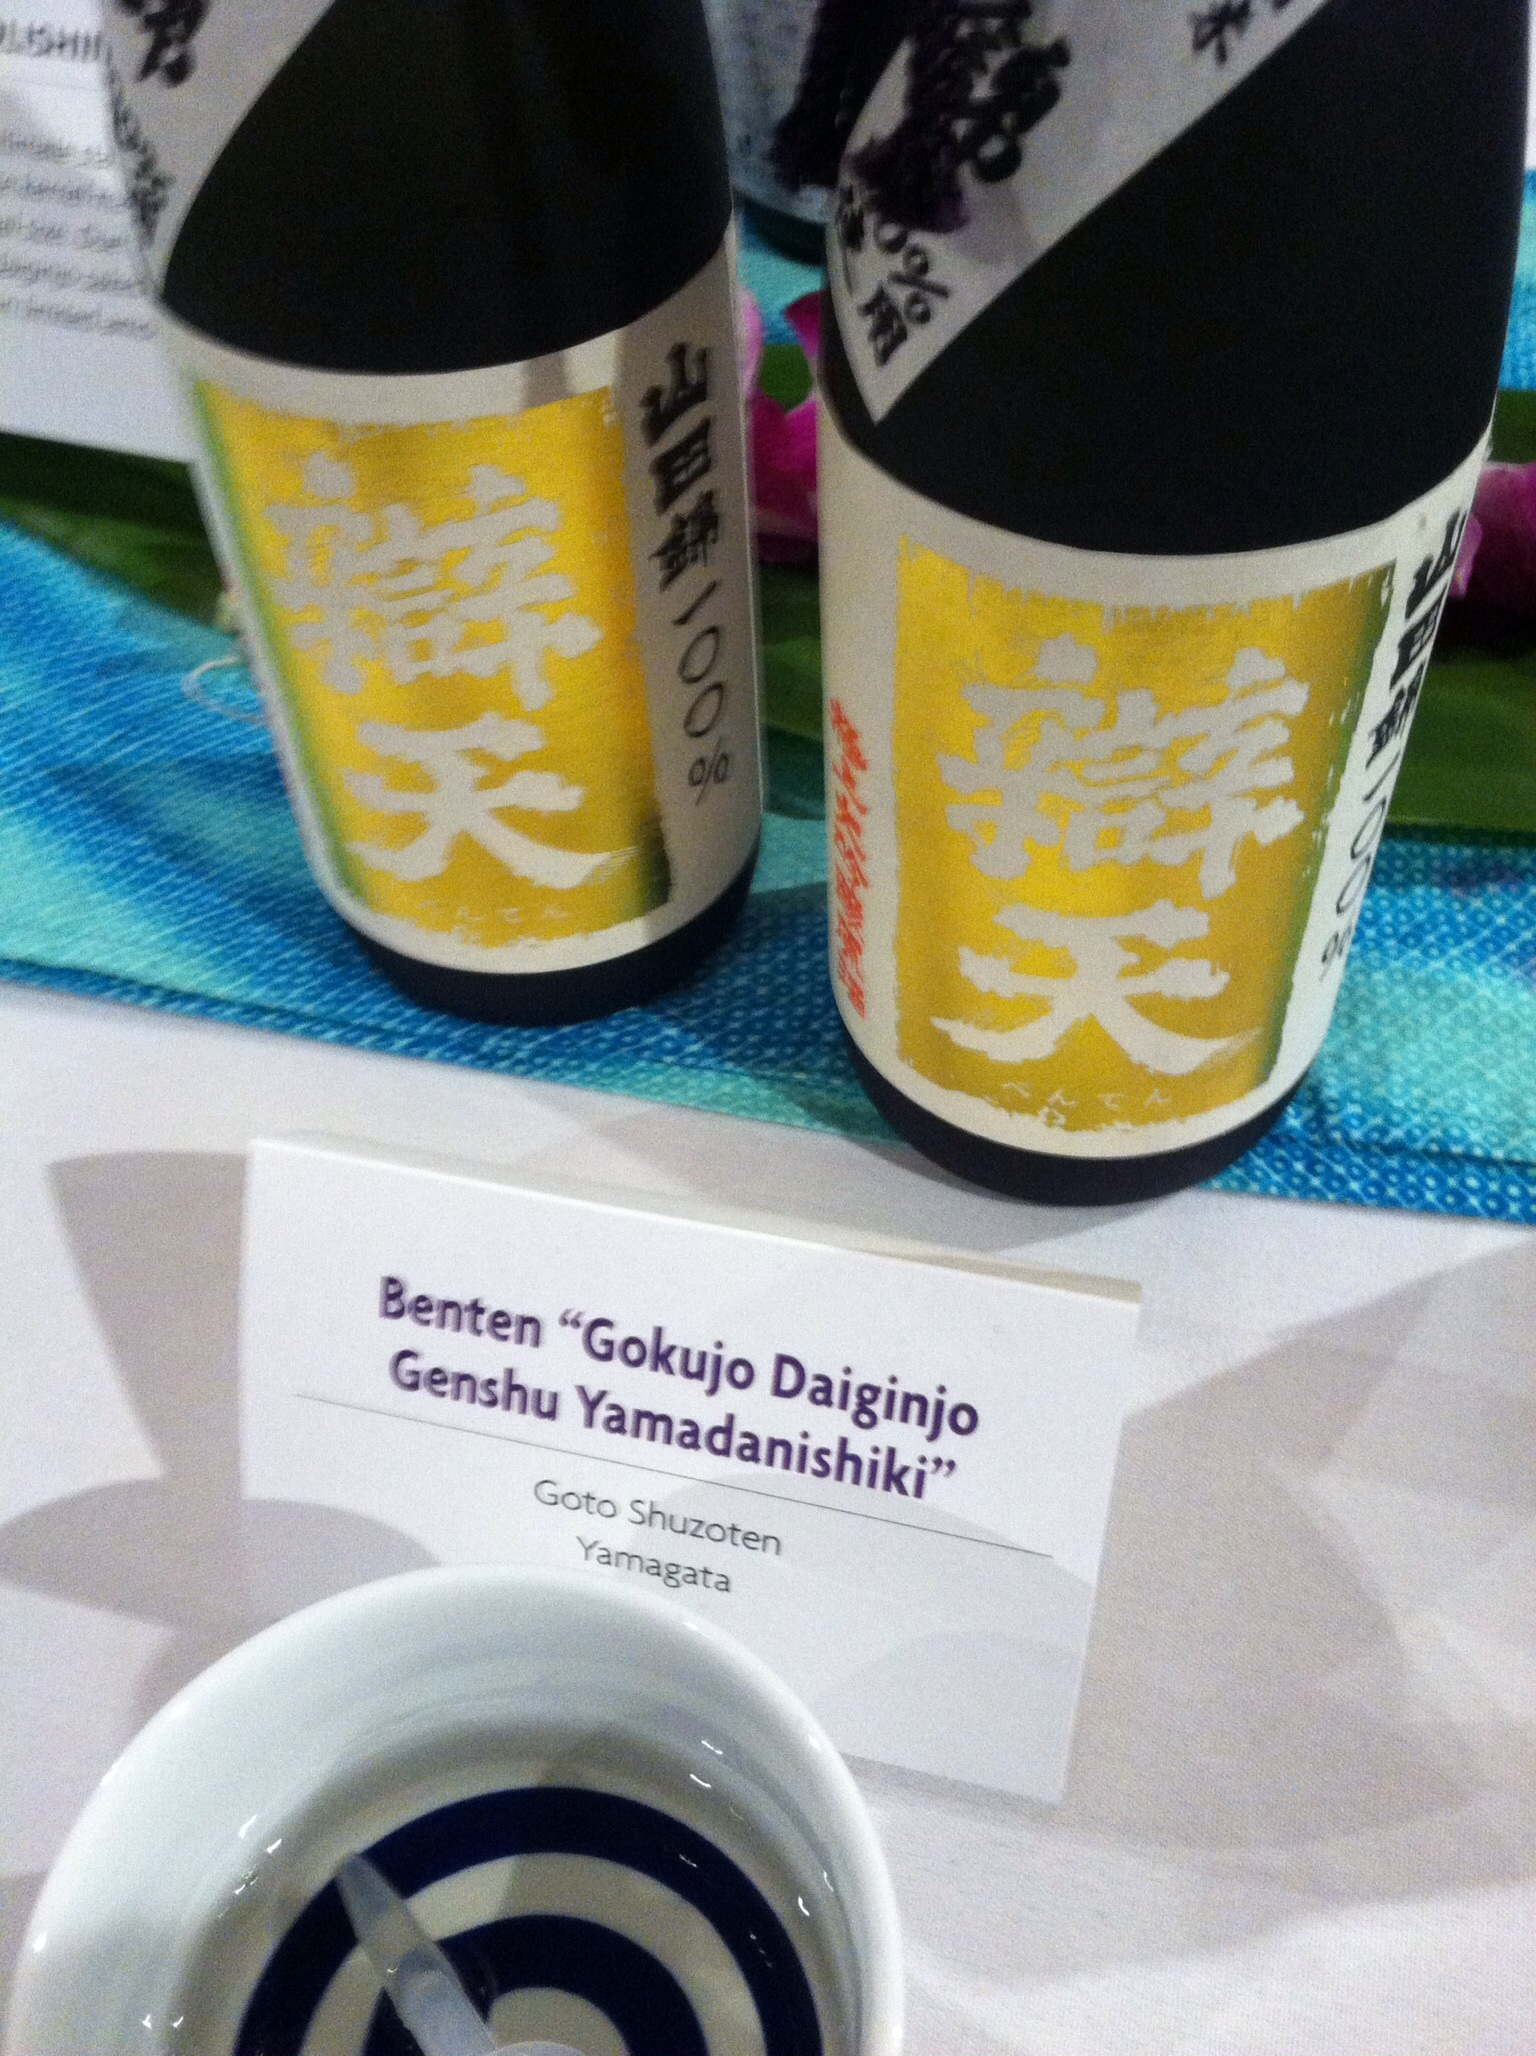 They're not kidding with that gold label, this was beautiful sake. Photo by Shana Sokol, Shana Speaks WIne.